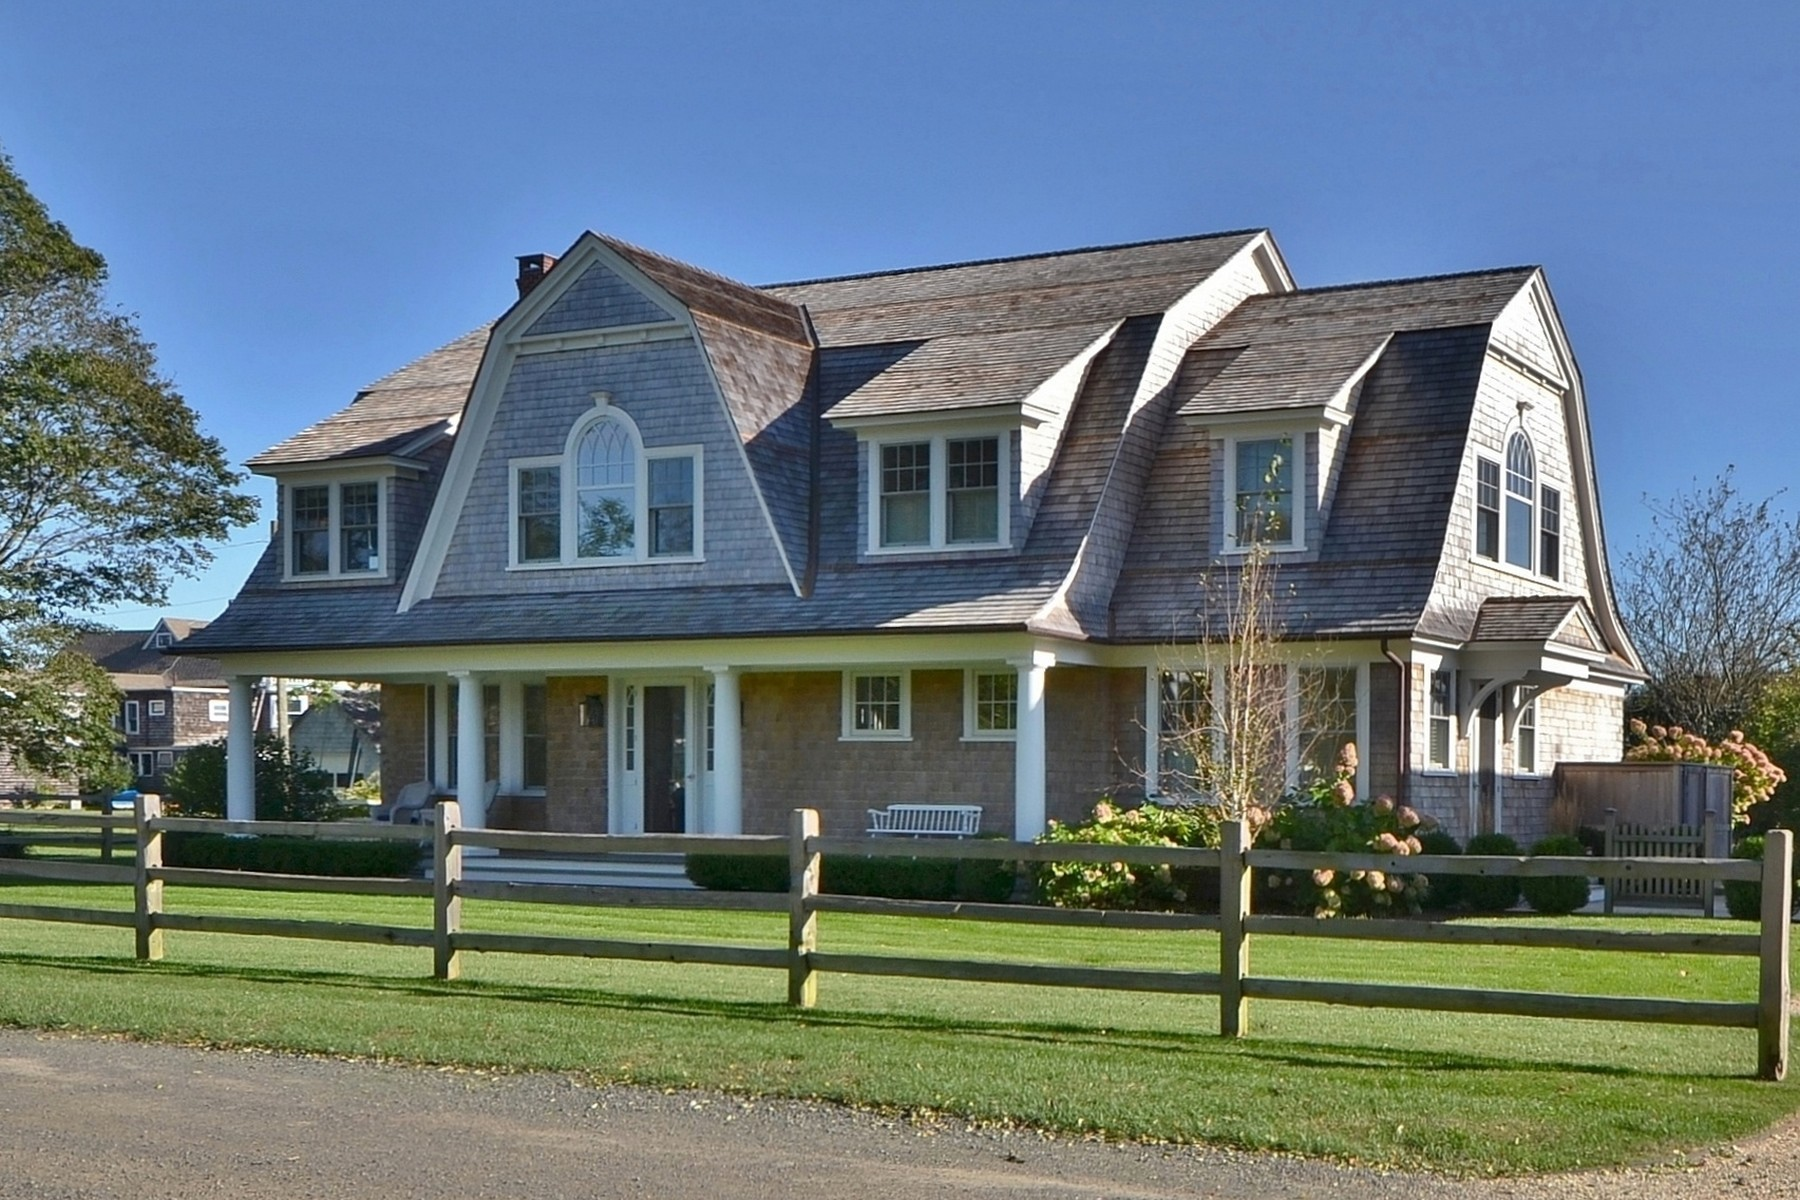 Single Family Homes for Sale at Beautiful Fenwick Waterfront Home 23 Pettipaug Avenue, Old Saybrook, Connecticut 06475 United States